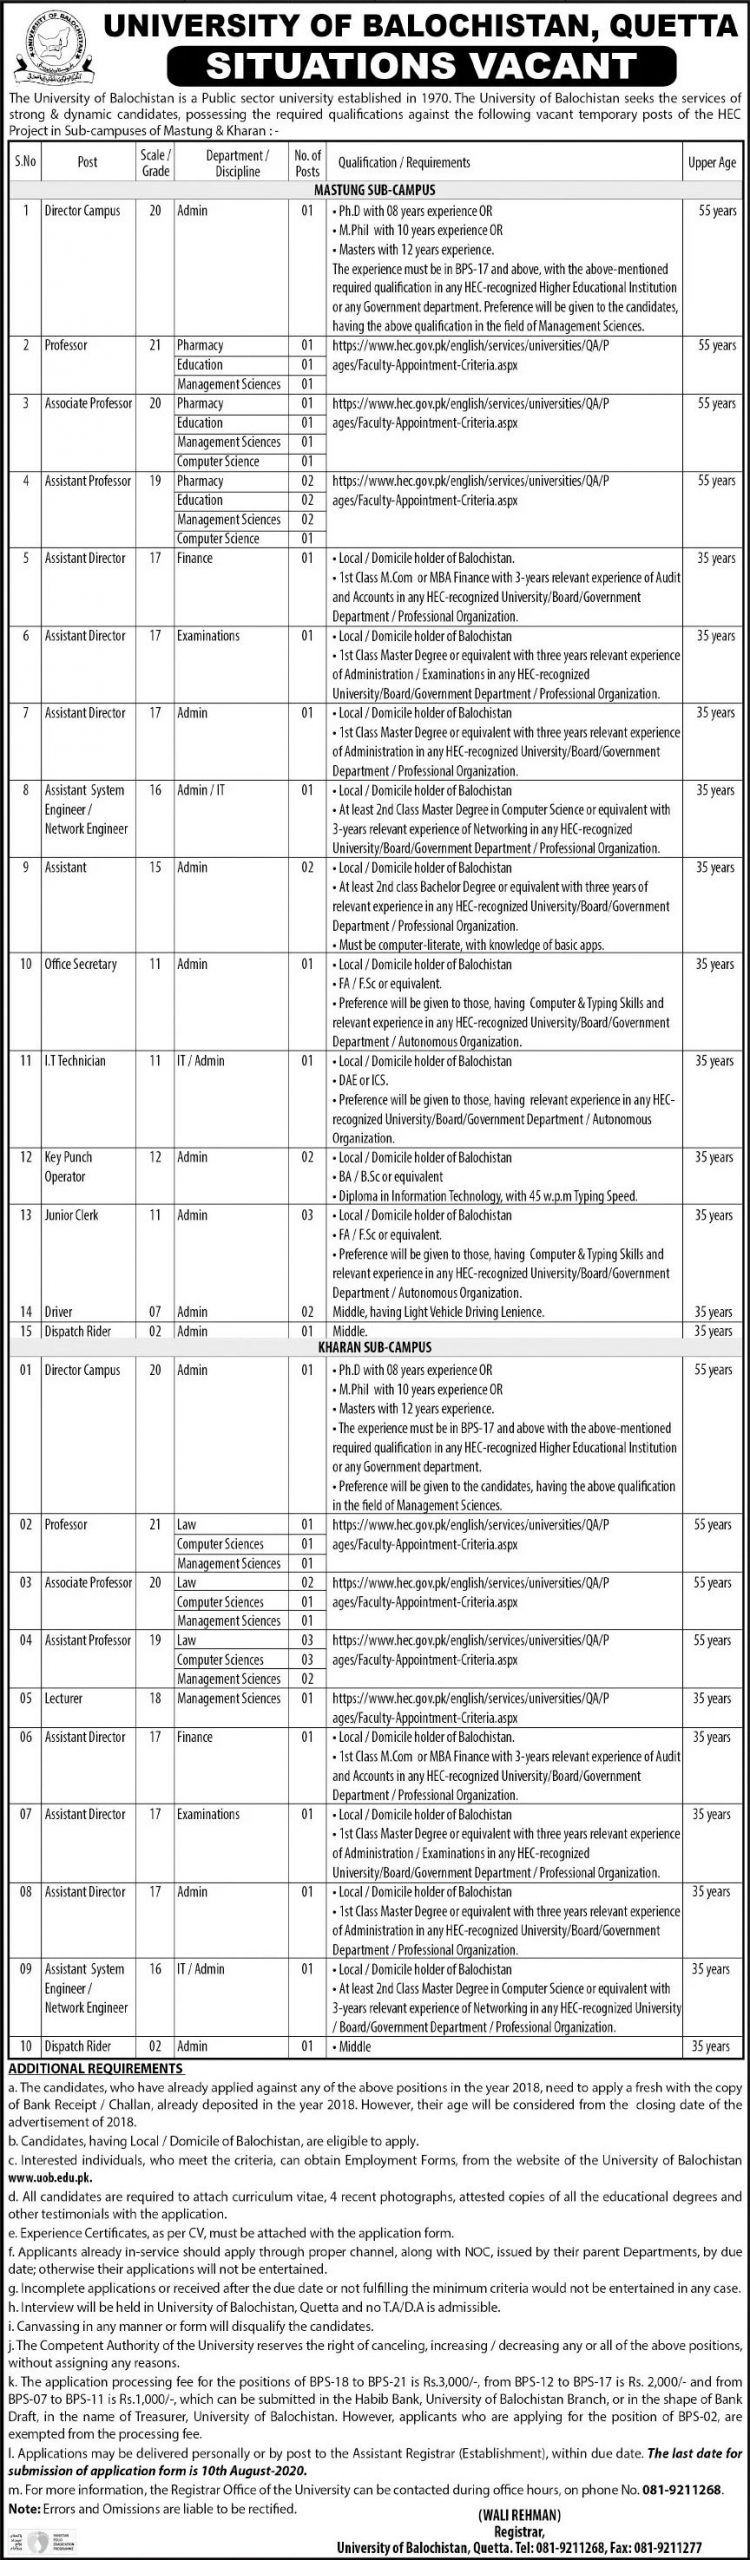 University of Balochistan Quetta Jobs June 2020